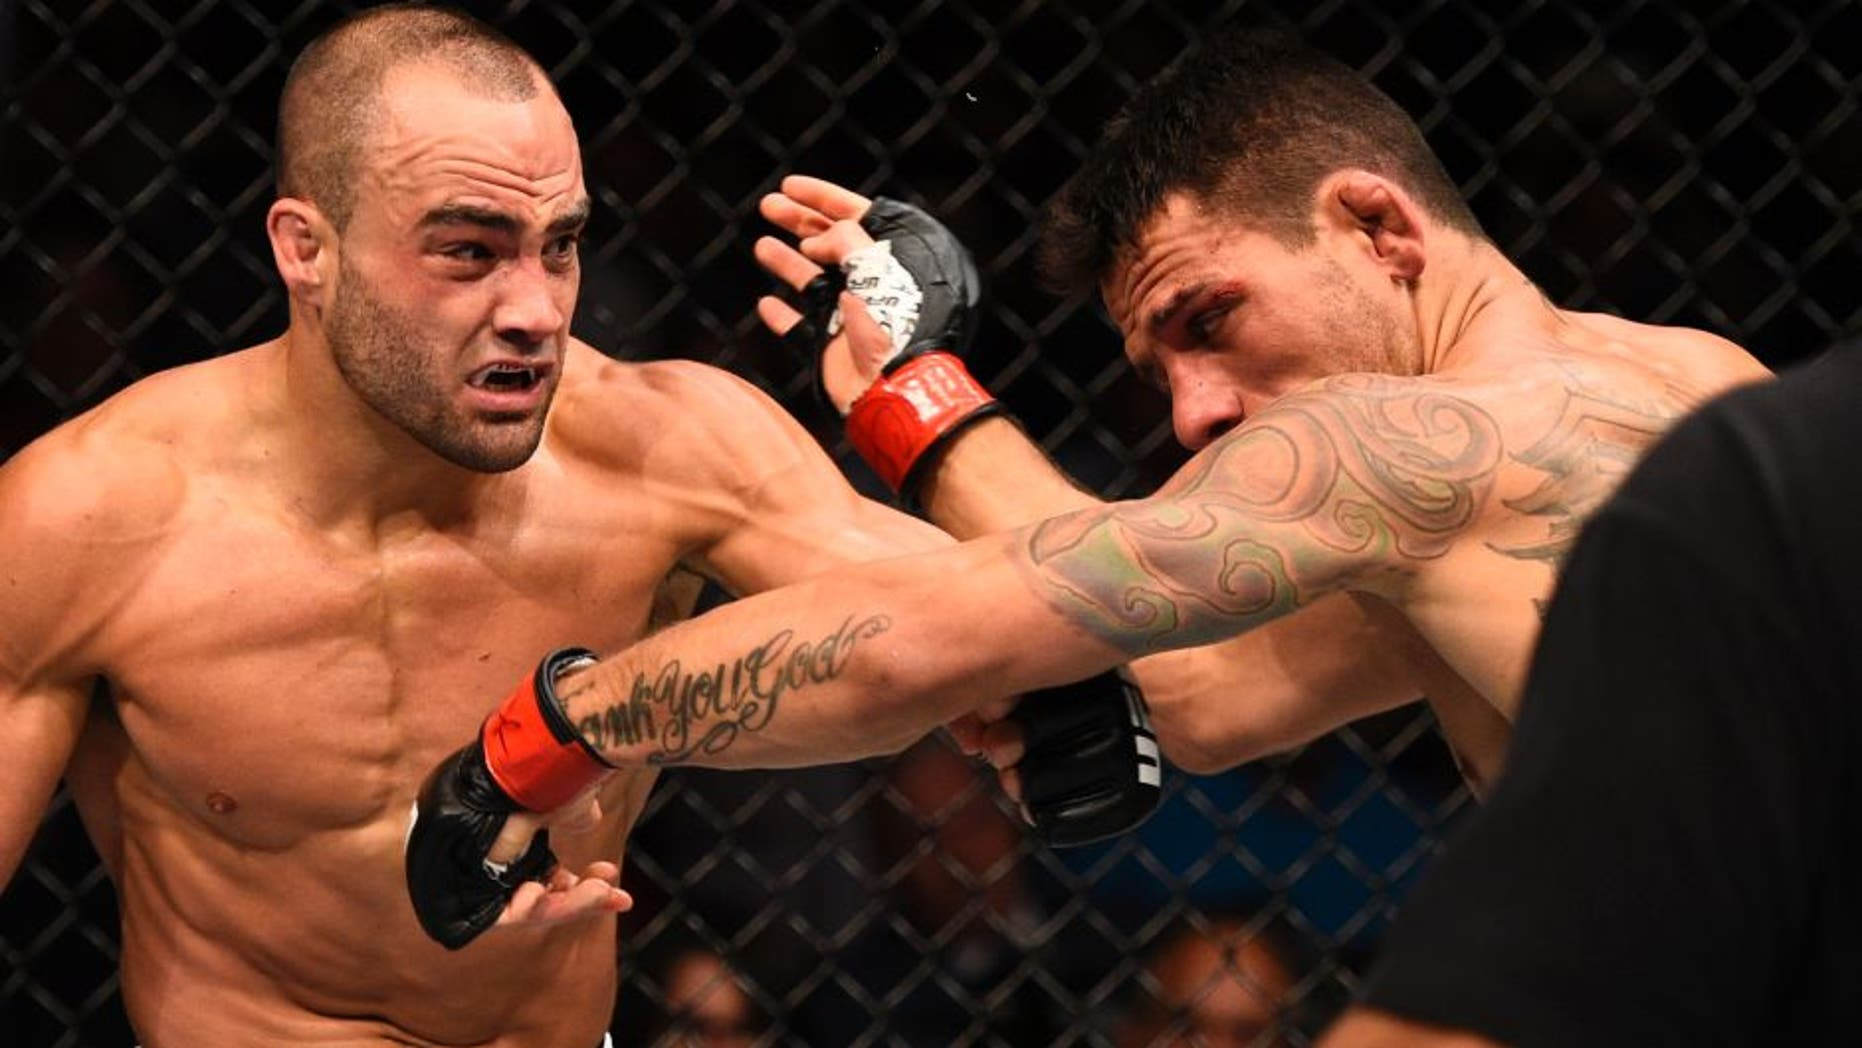 LAS VEGAS, NV - JULY 07: (L-R) Eddie Alvarez connects with a left against Rafael Dos Anjos of Brazil in their lightweight championship bout during the UFC Fight Night event inside the MGM Grand Garden Arena on July 7, 2016 in Las Vegas, Nevada. (Photo by Jeff Bottari/Zuffa LLC/Zuffa LLC via Getty Images)